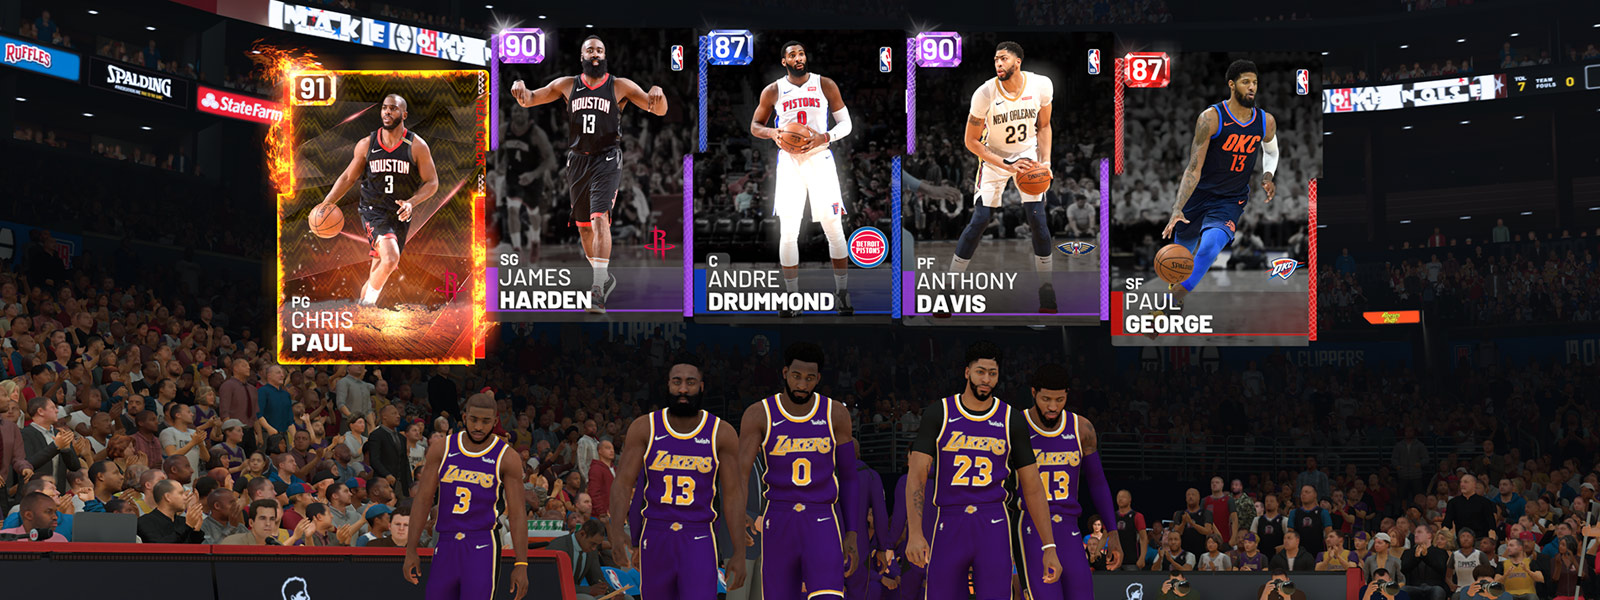 Vista frontal da equipa dos Lakers, composta por Chris Paul, James Harden, Andrew Drummond, Anthony Davis e Paul George